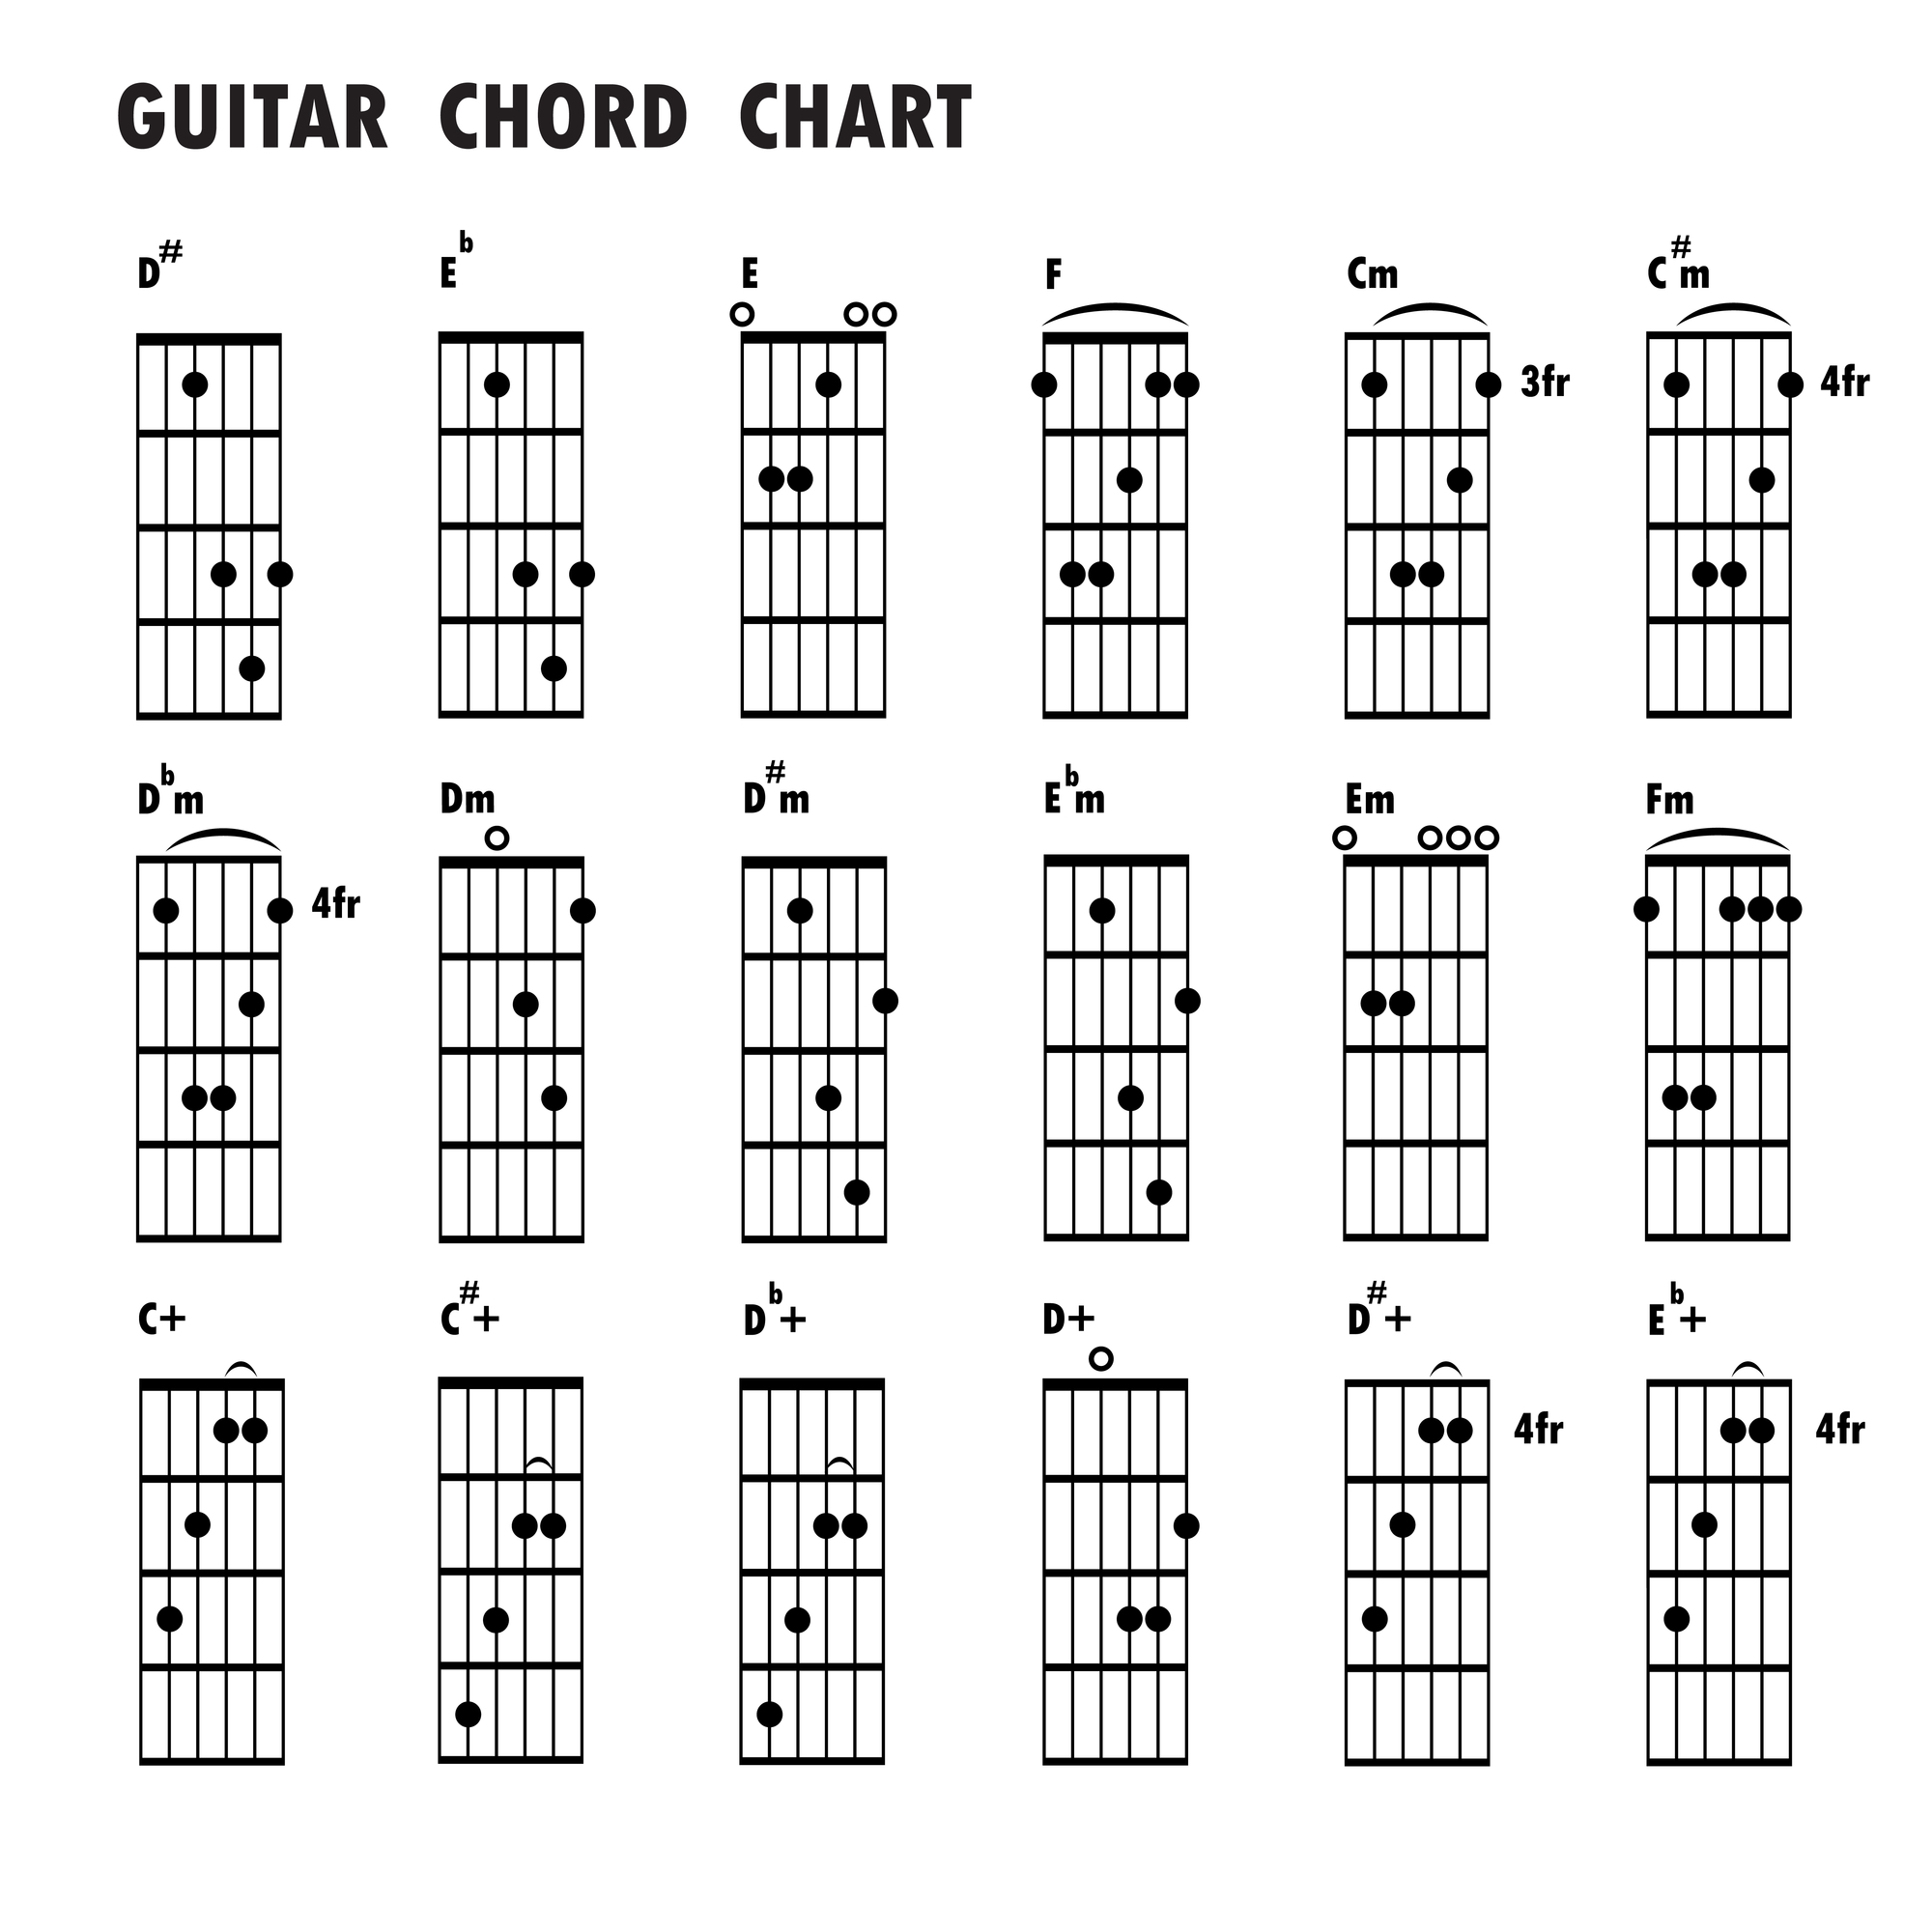 Bad Guy Set It Off Chords Chord Changing Exercises How To Smoothly Change Your Chords